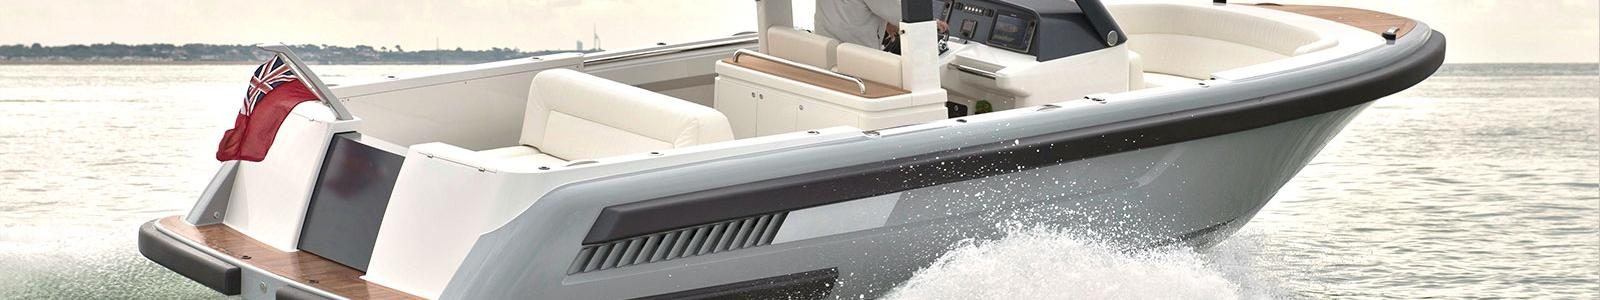 Projects-2015-05-superyacht-tender.Compass-open-tender-slider.jpg